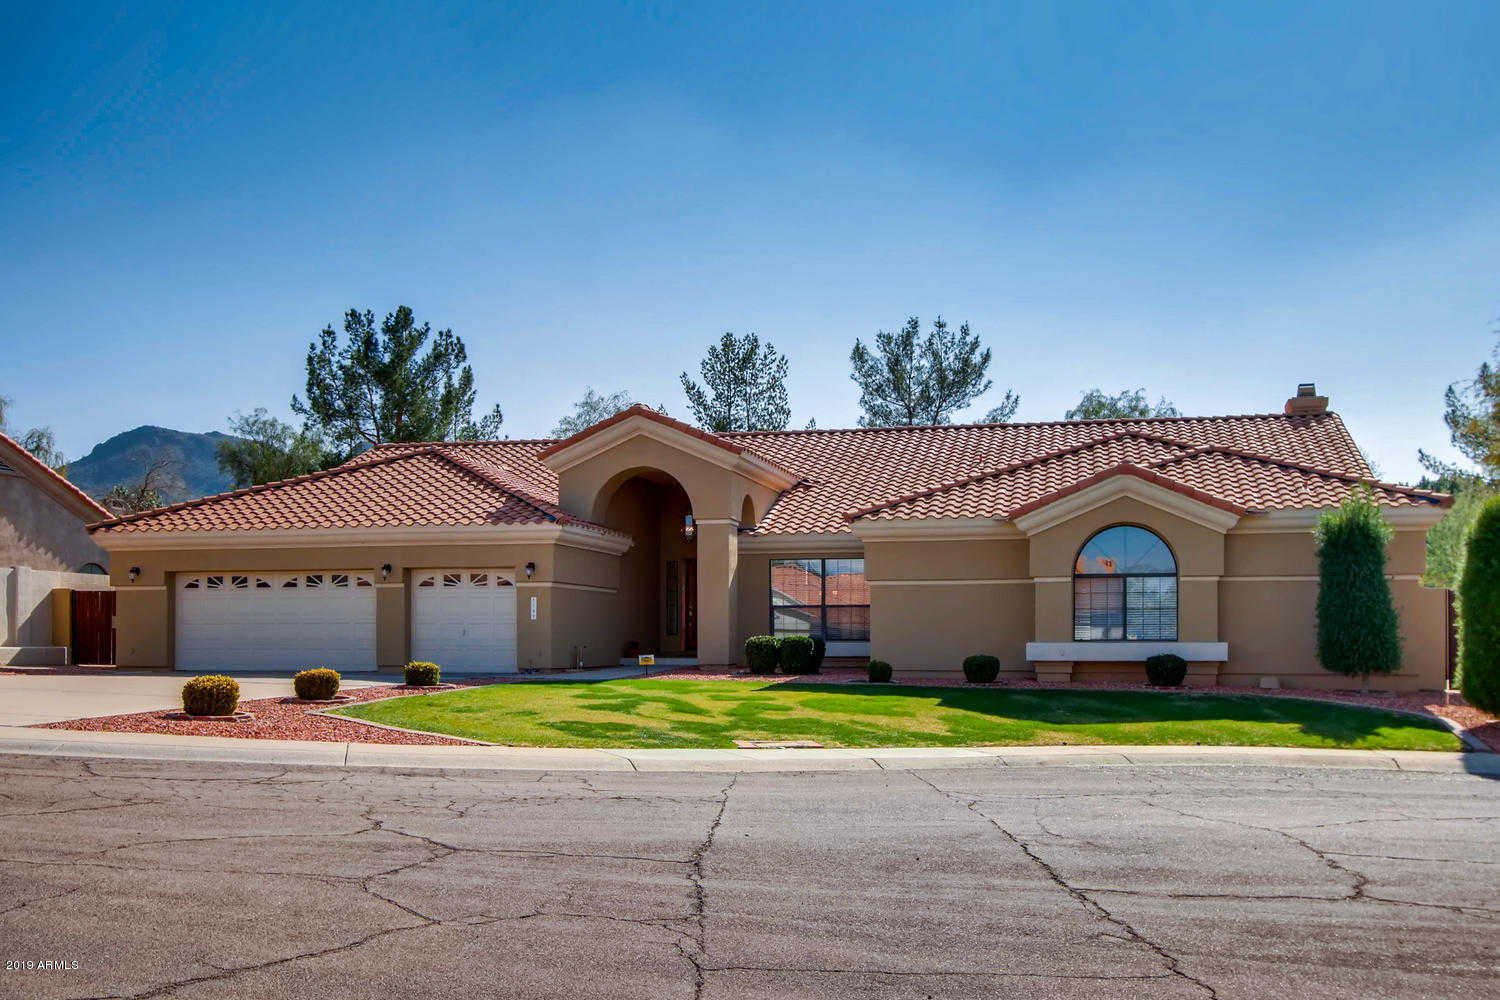 $500,000 - 4Br/4Ba - Home for Sale in Moon Valley Canyon, Phoenix